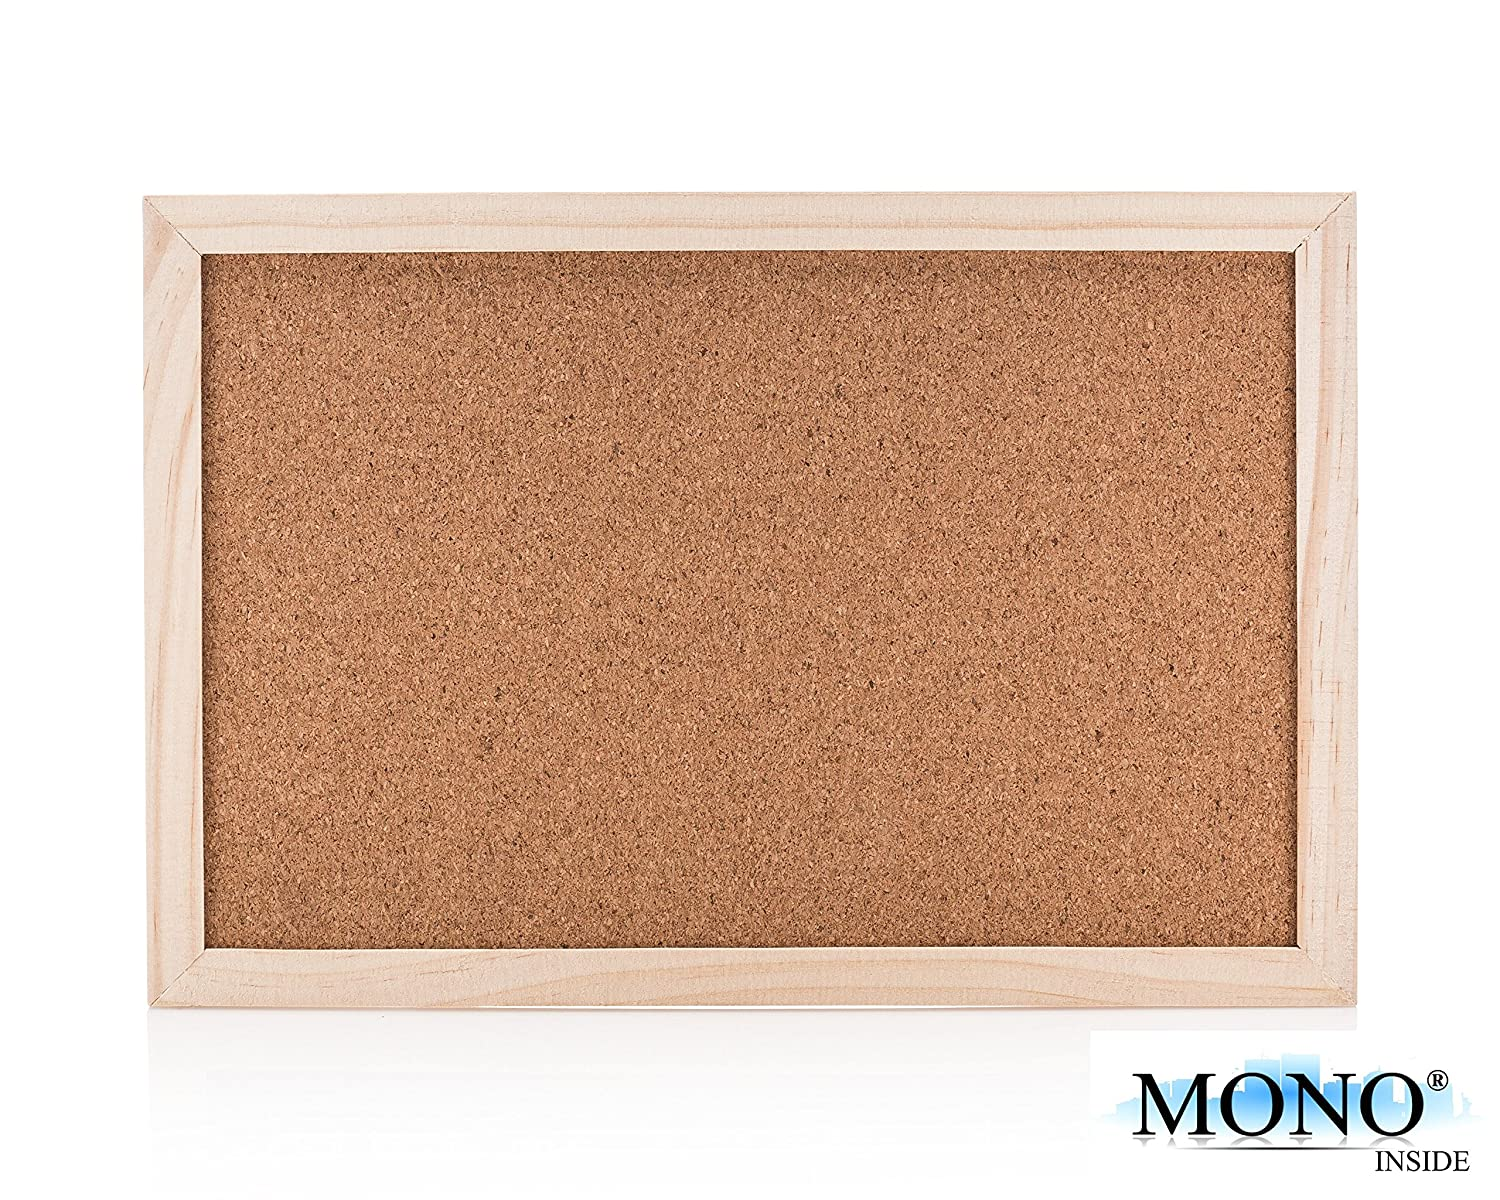 "MONOINSIDE Small Wood Framed Cork Bulletin Board, Wall Mountable Push Pin Notice Board for Offices, Schools and Classrooms, 12"" x 8"" Inches 12"" x 8"" Inches MONOINSIDE® MONO-CORK001"